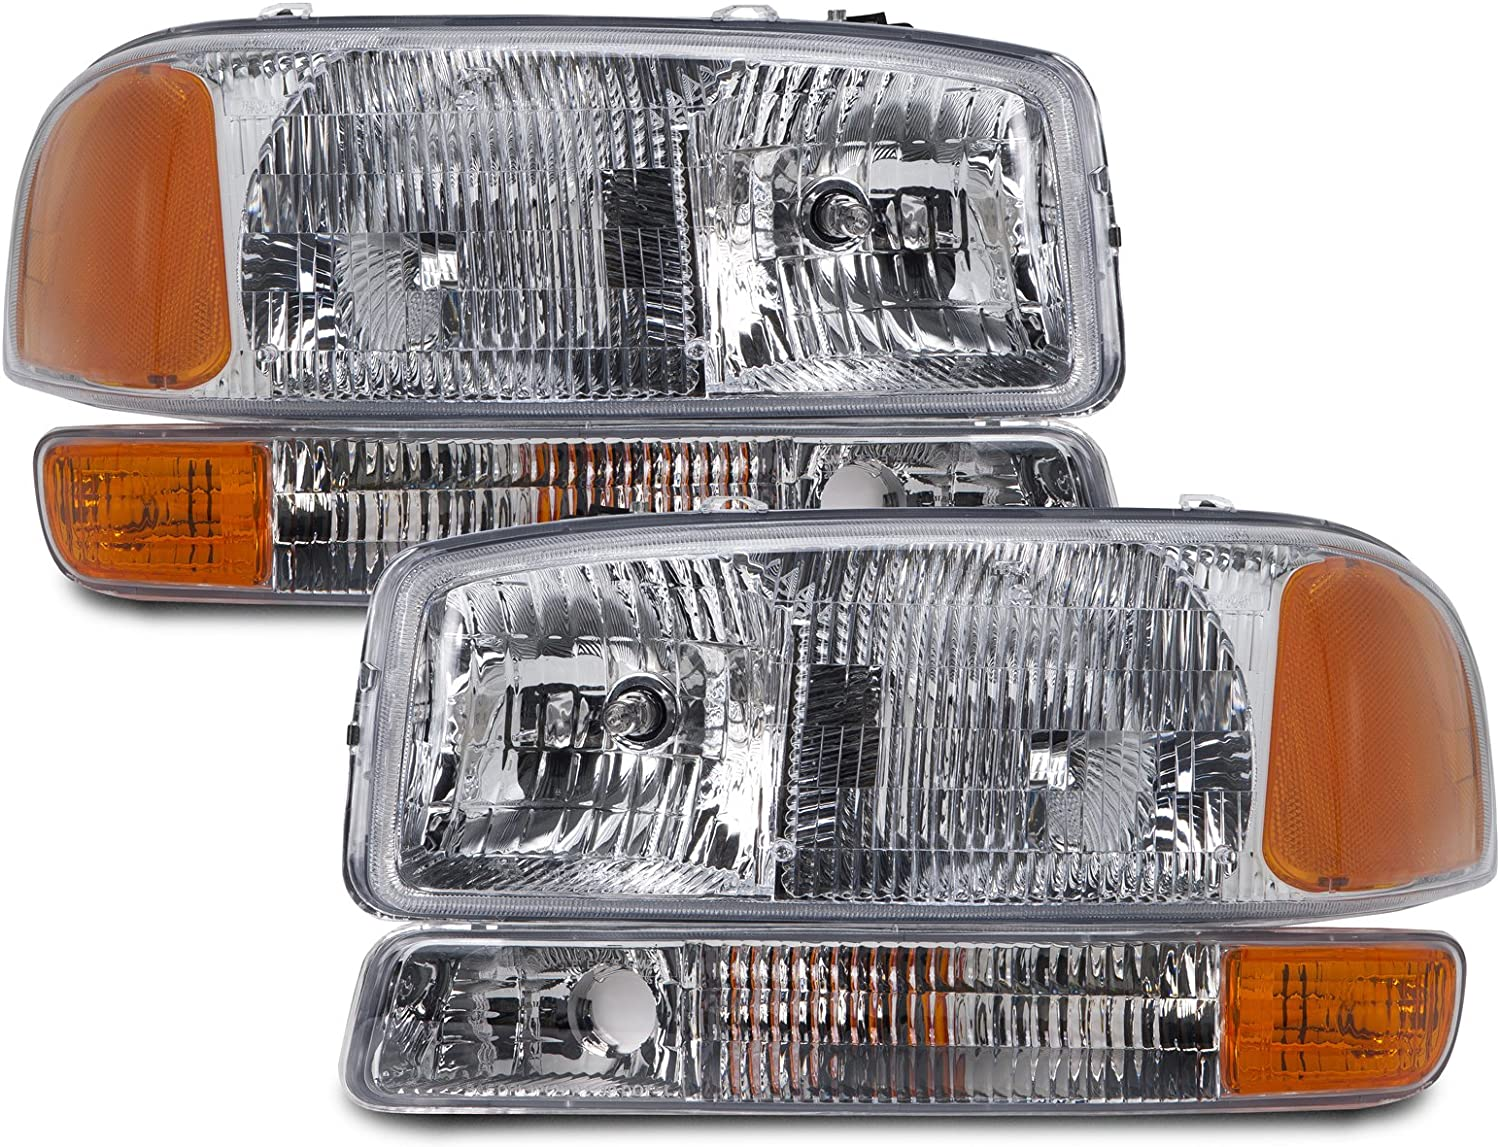 Headlights Depot Replacement for GMC Sierra//Yukon Park Signal Light OE Style Replacement Driver//Passenger Pair